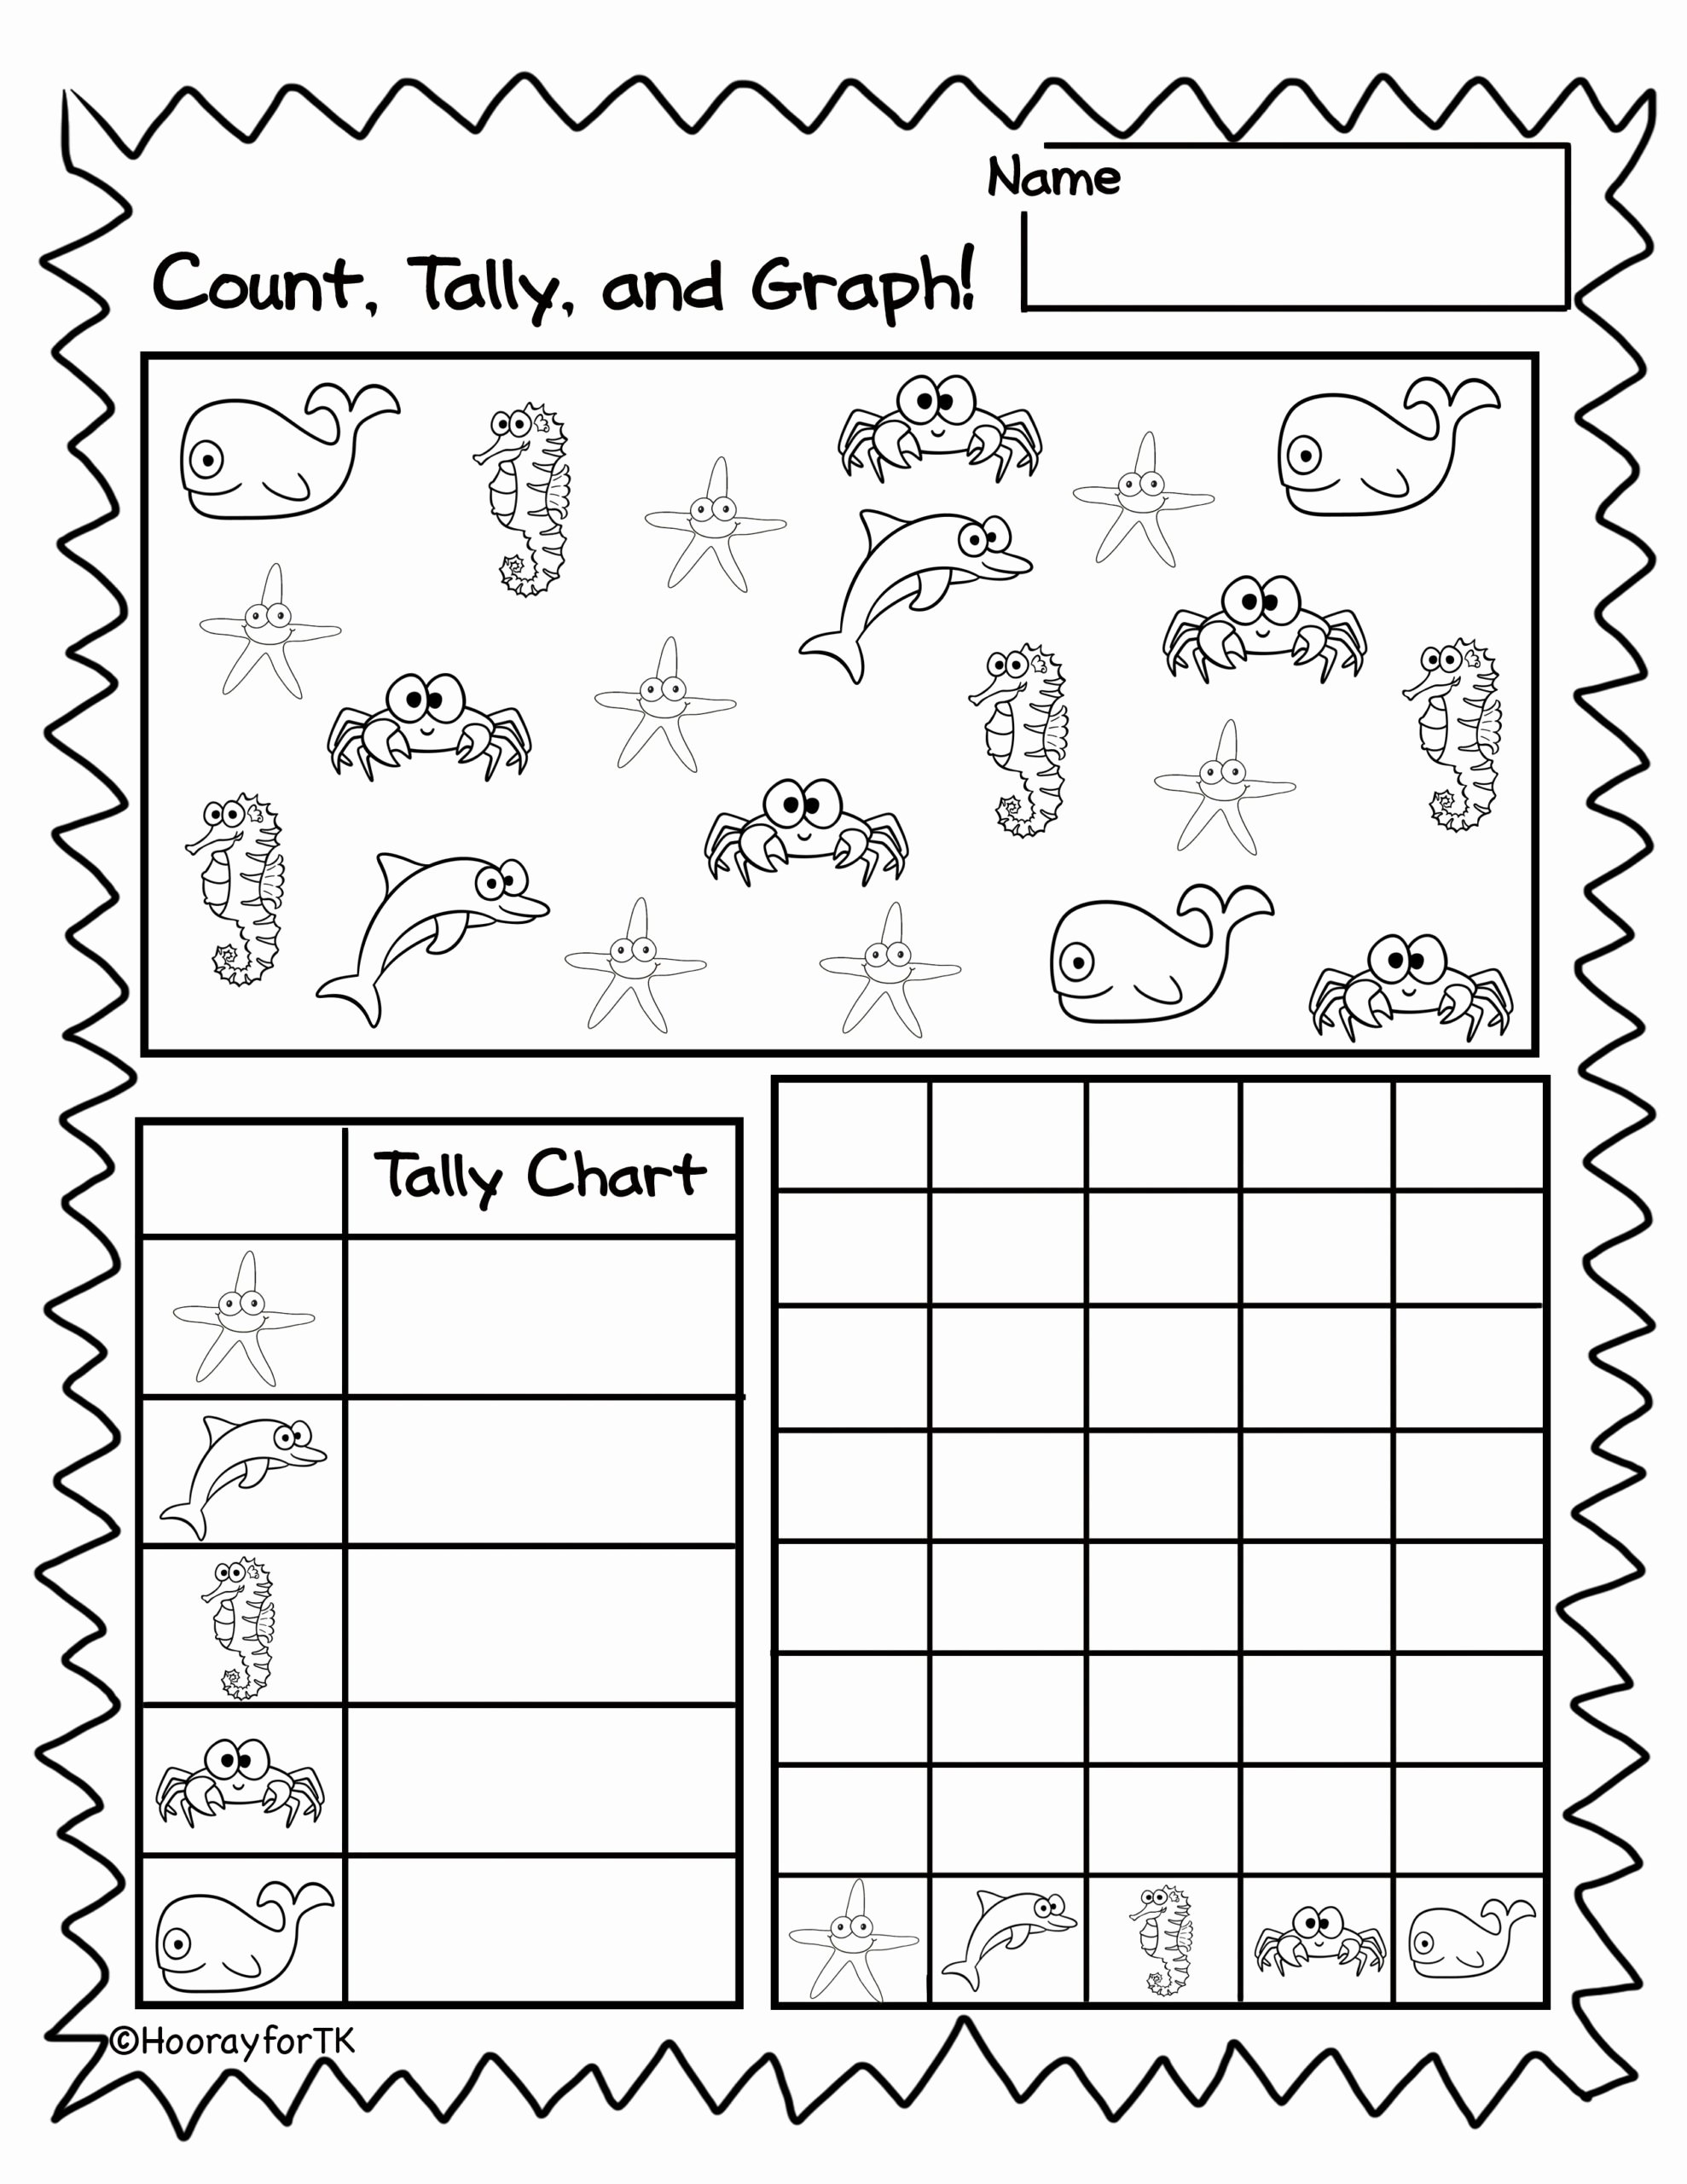 Free Printable Weather Worksheets for Preschoolers Printable Printable Coloring Free Activity Sheets for Kids